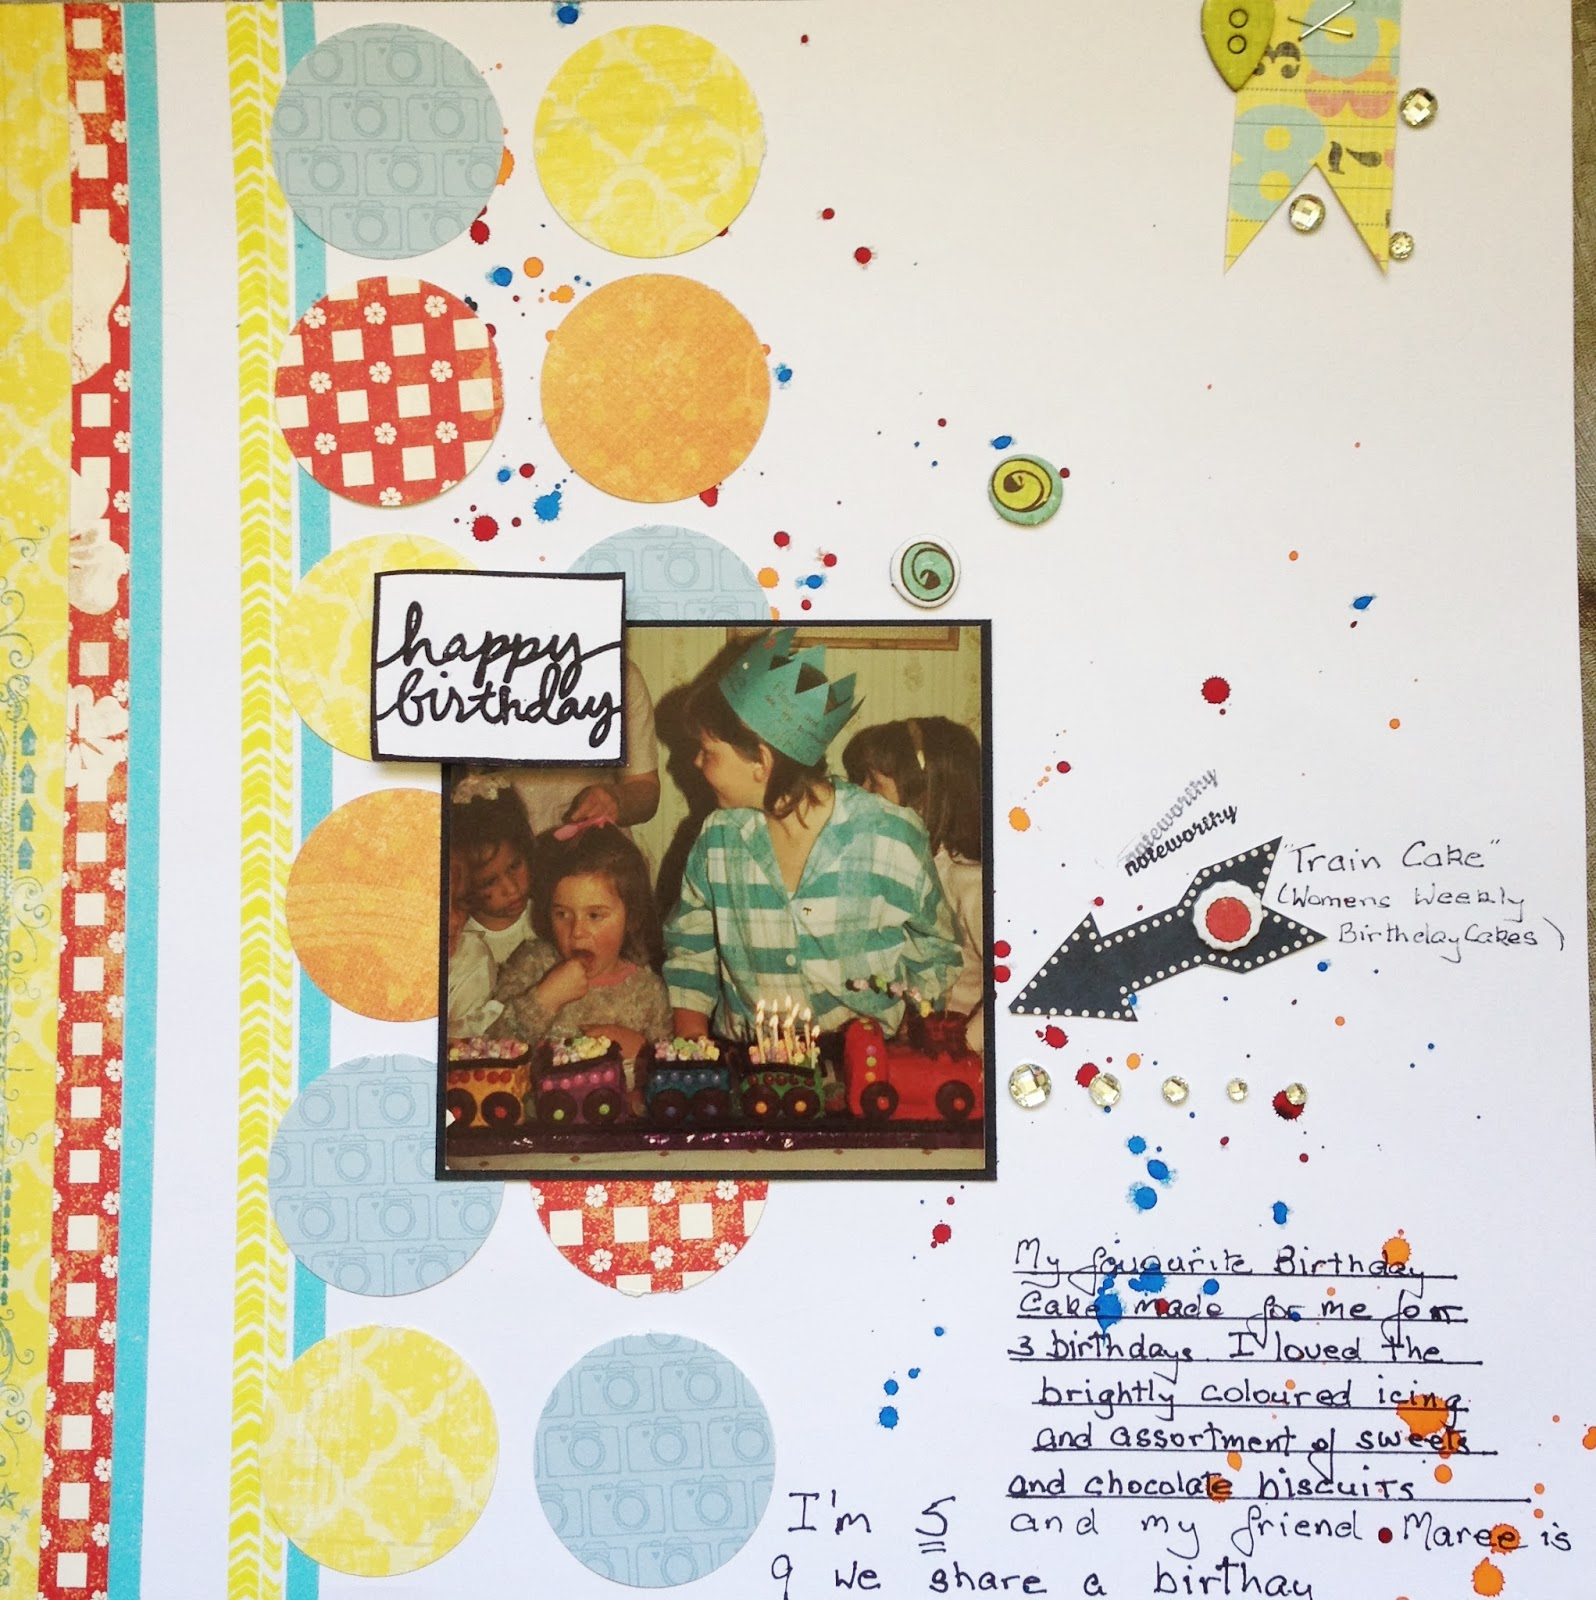 'Noteworthy' Kit by Fleur Millington. Dizzy Izzy Scrapbooking